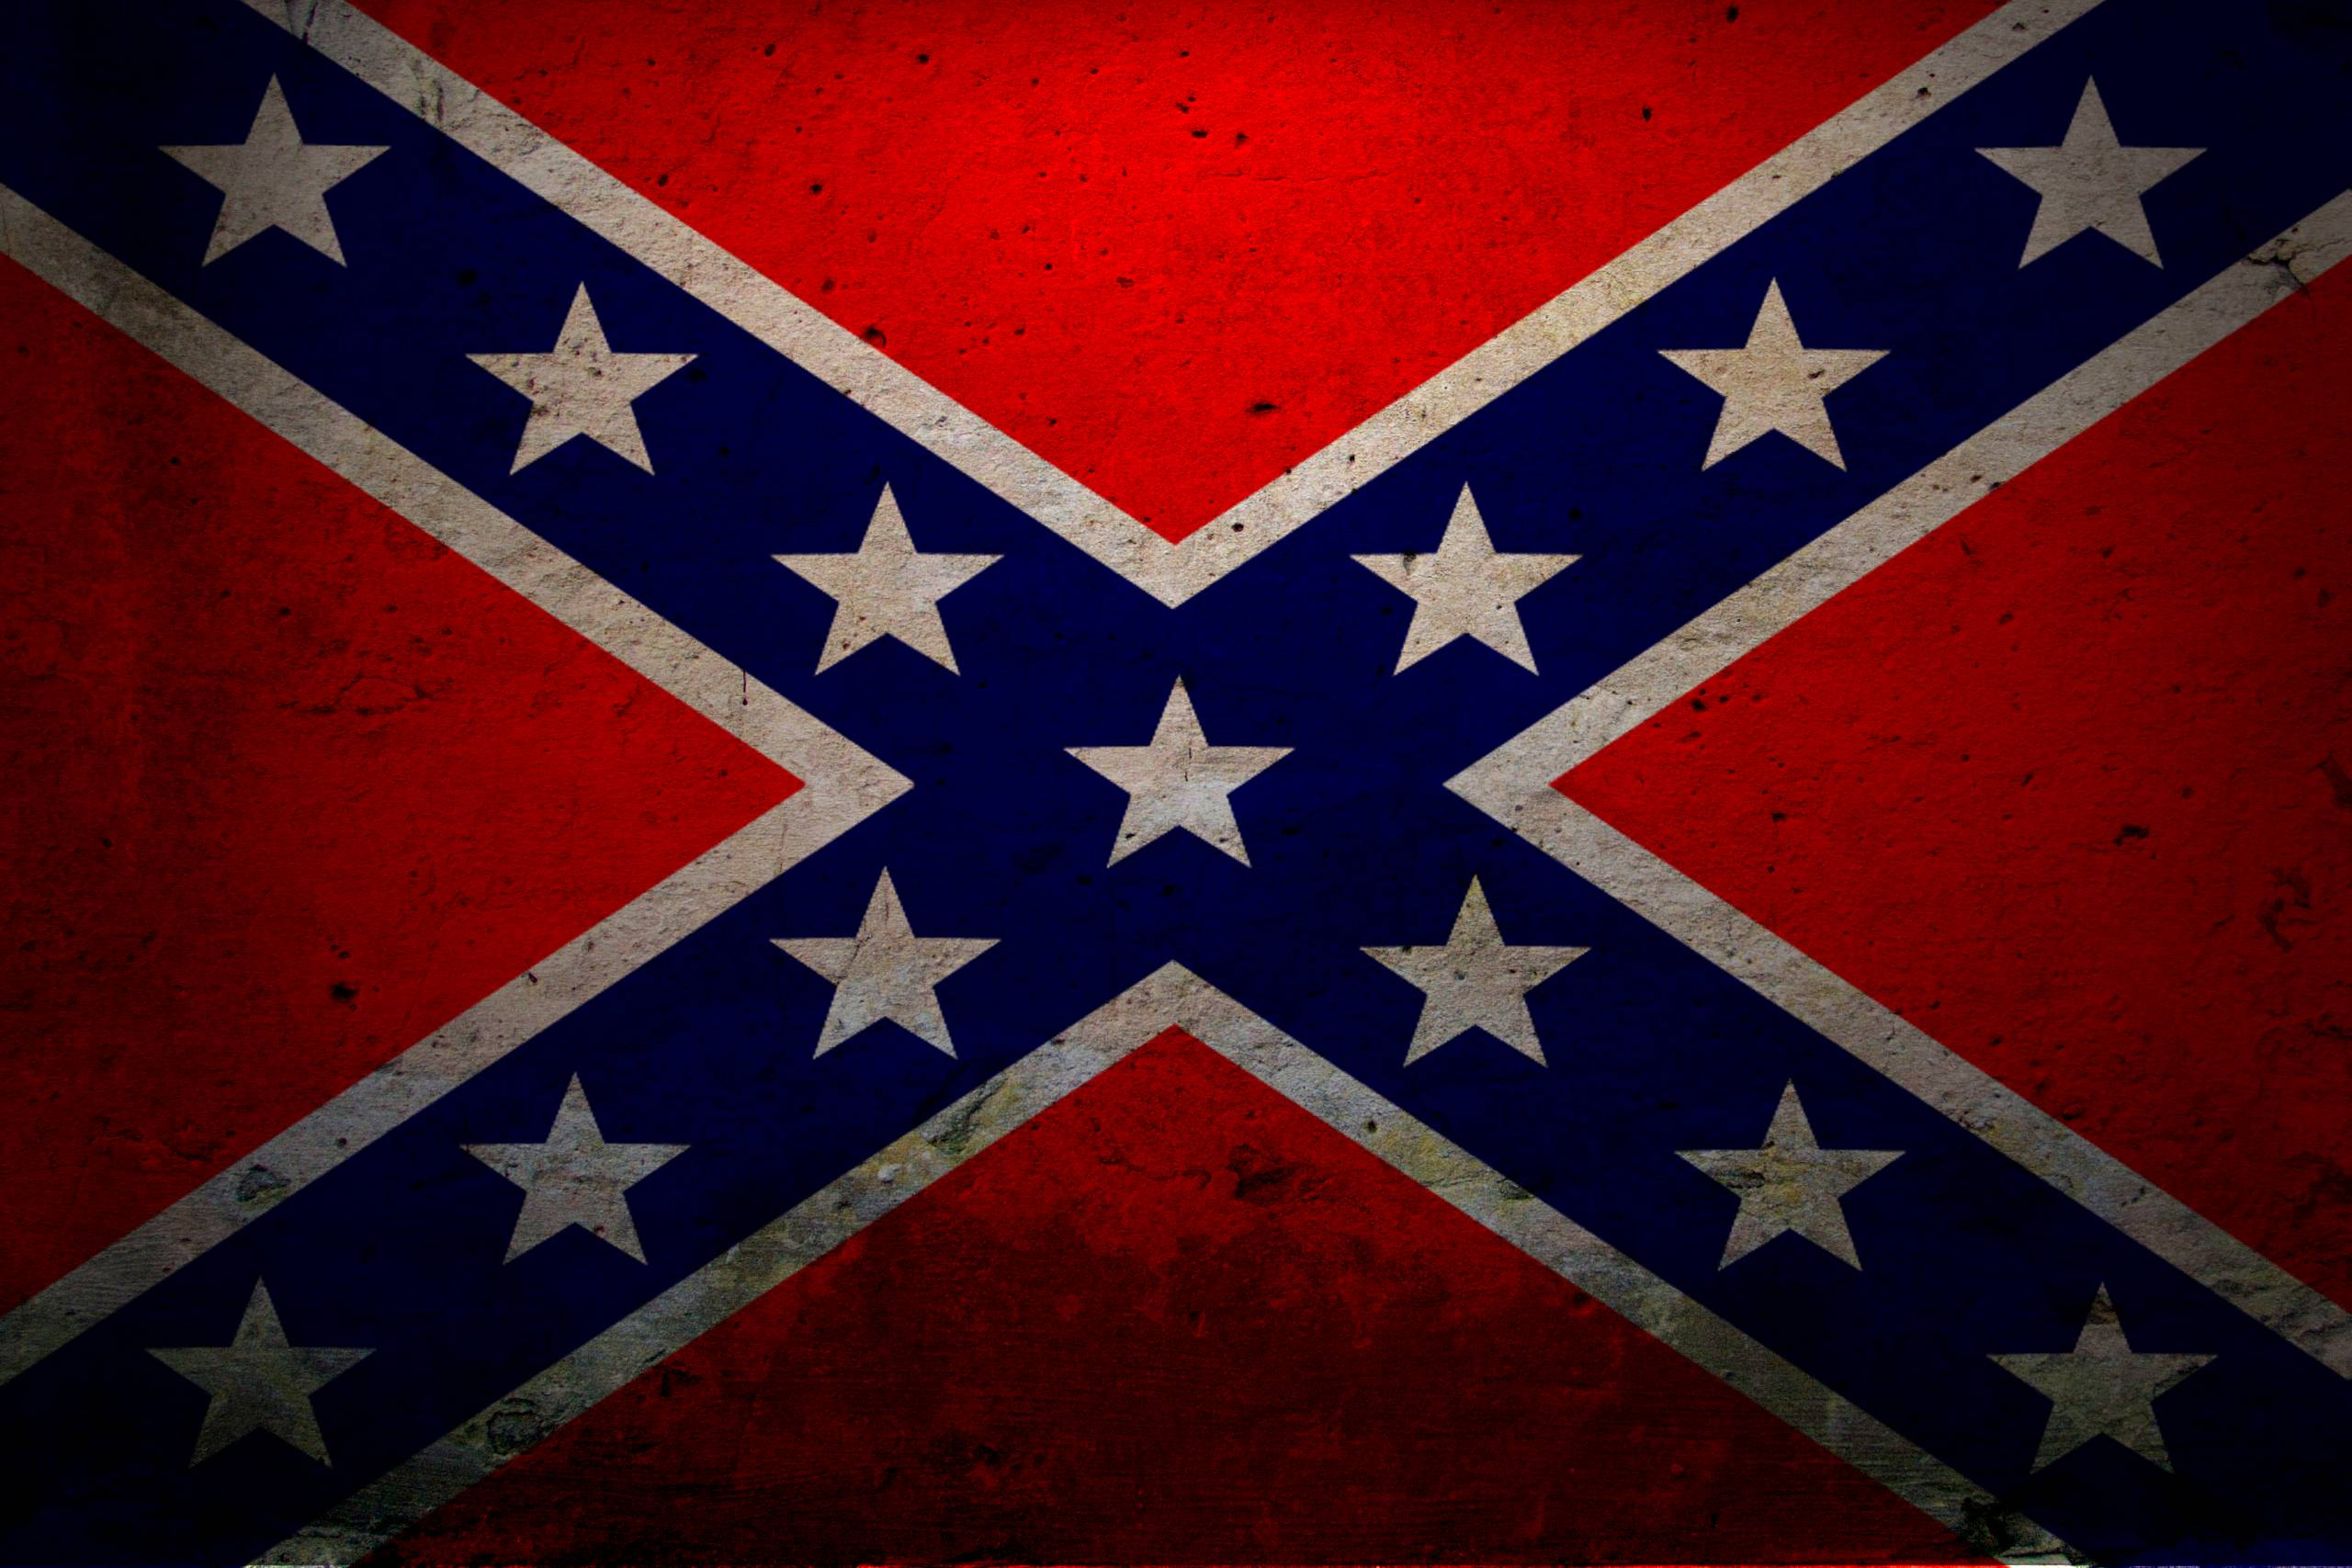 3 Flags Of The Confederate States Of America Wallpapers | Flags Of ...